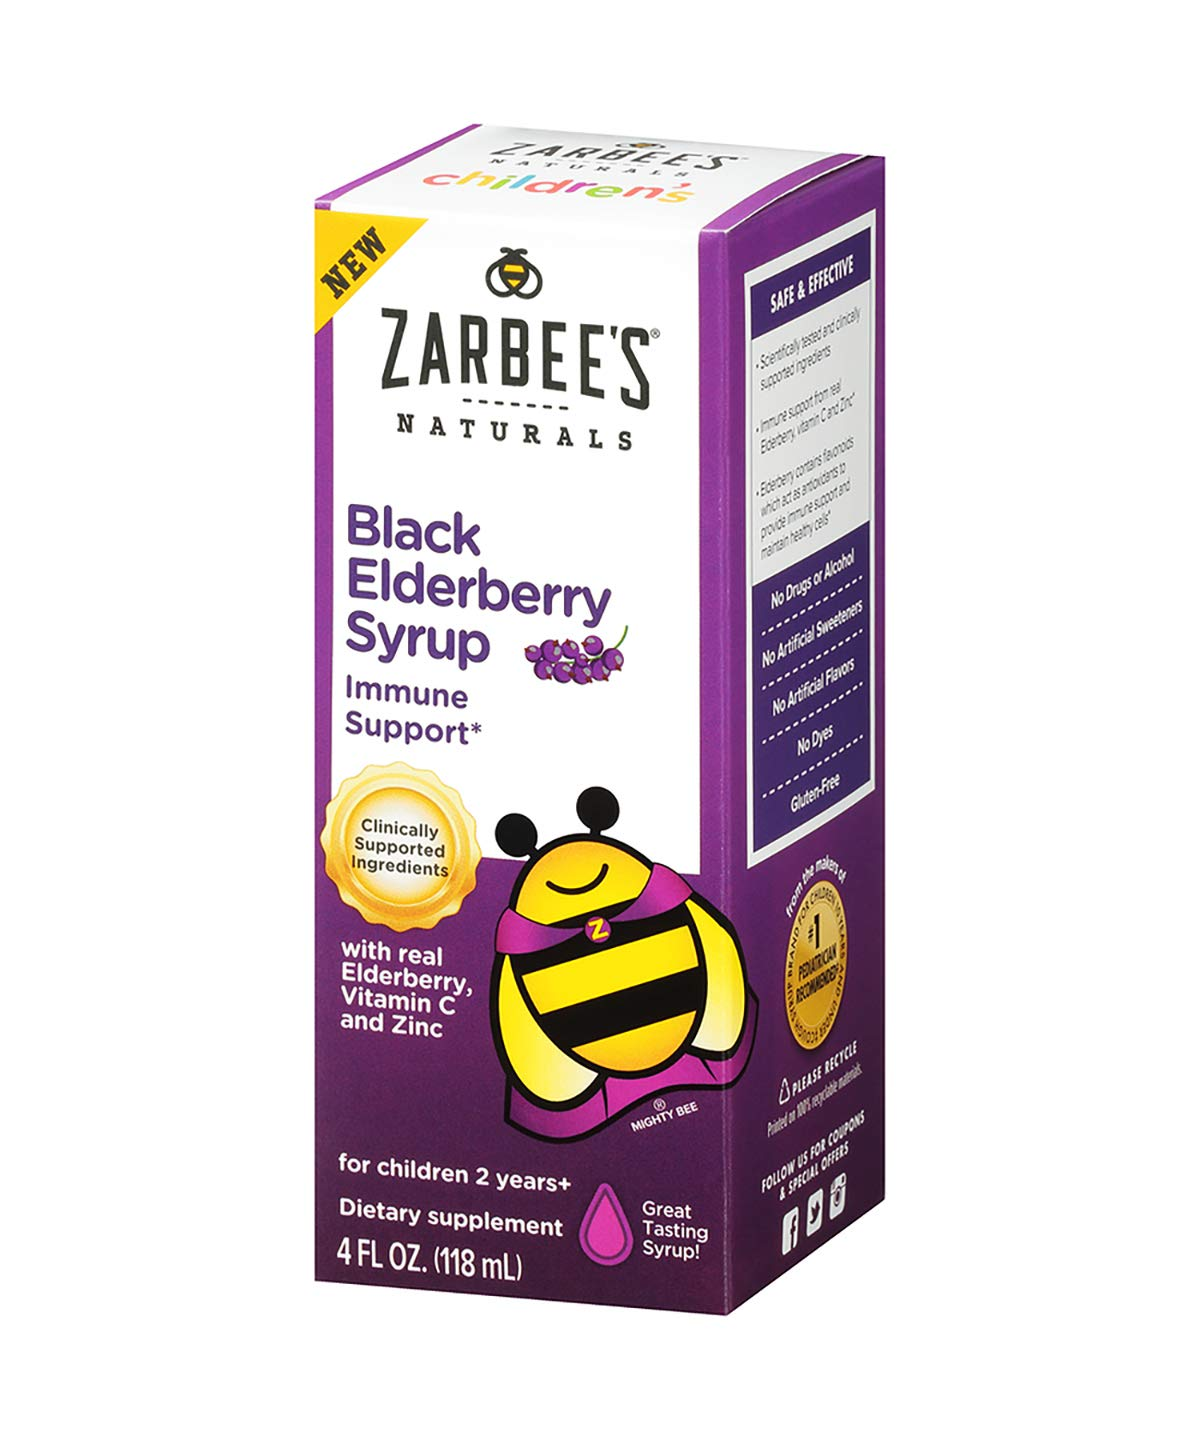 Zarbee's Naturals Children's Black Elderberry Syrup for Immune Support with Real Elderberry, Vitamin C, and Zinc, 4 Ounce